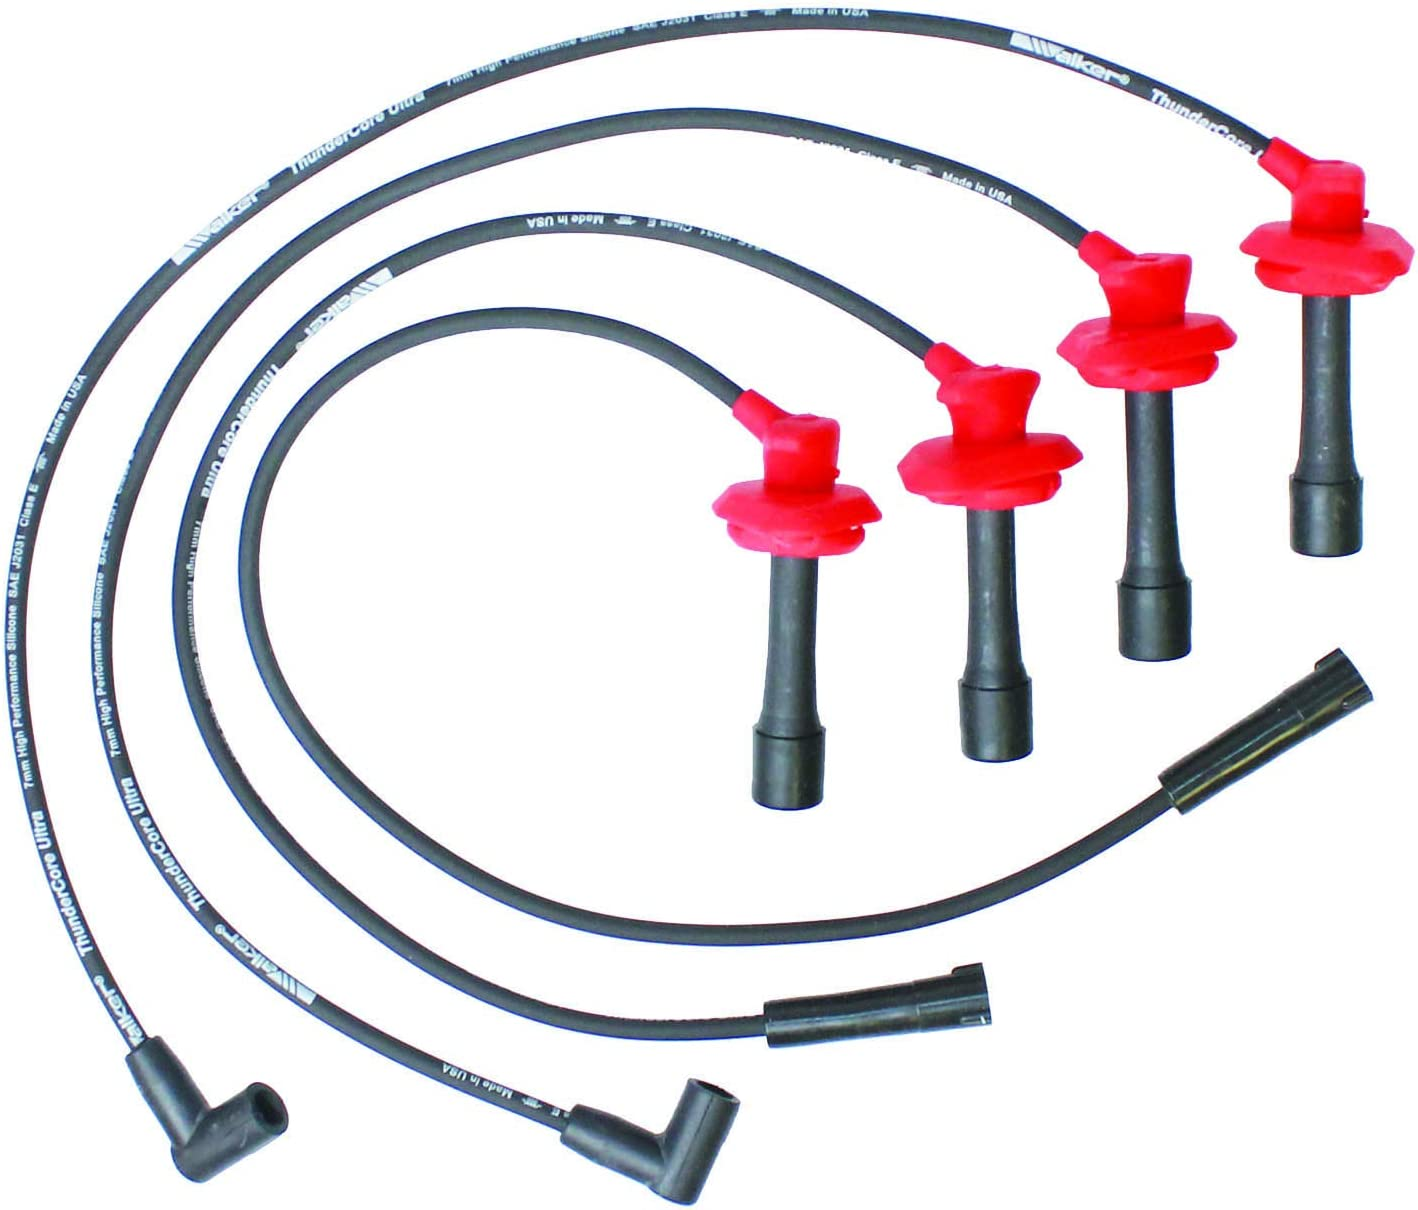 Walker Products 900-1985 Thundercore Ultra Plug Wire Elegant safety Set Spark